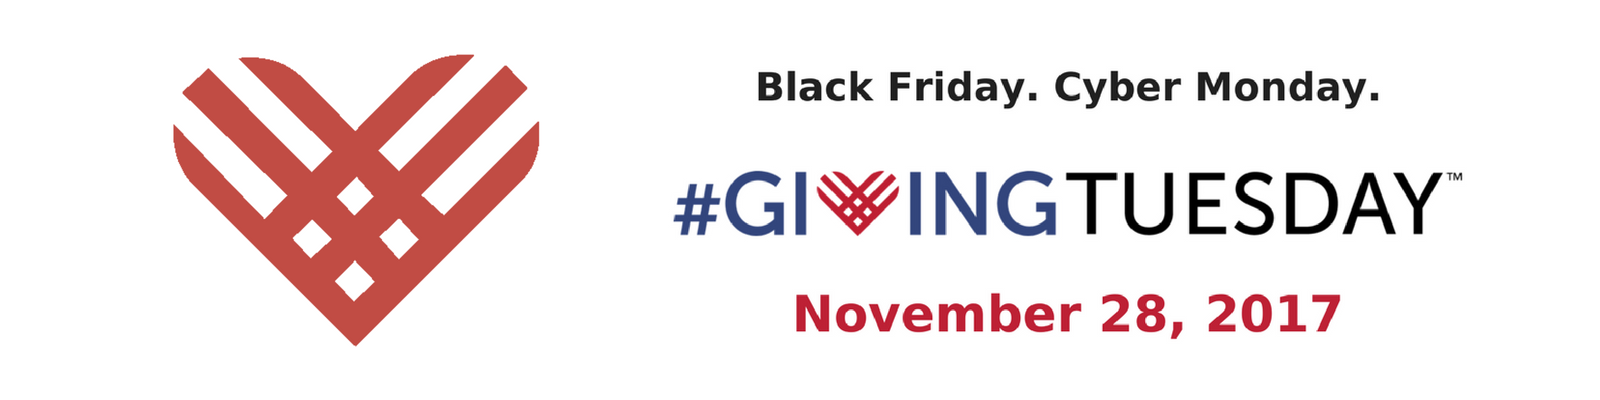 Support Drug Prevention on #GivingTuesday